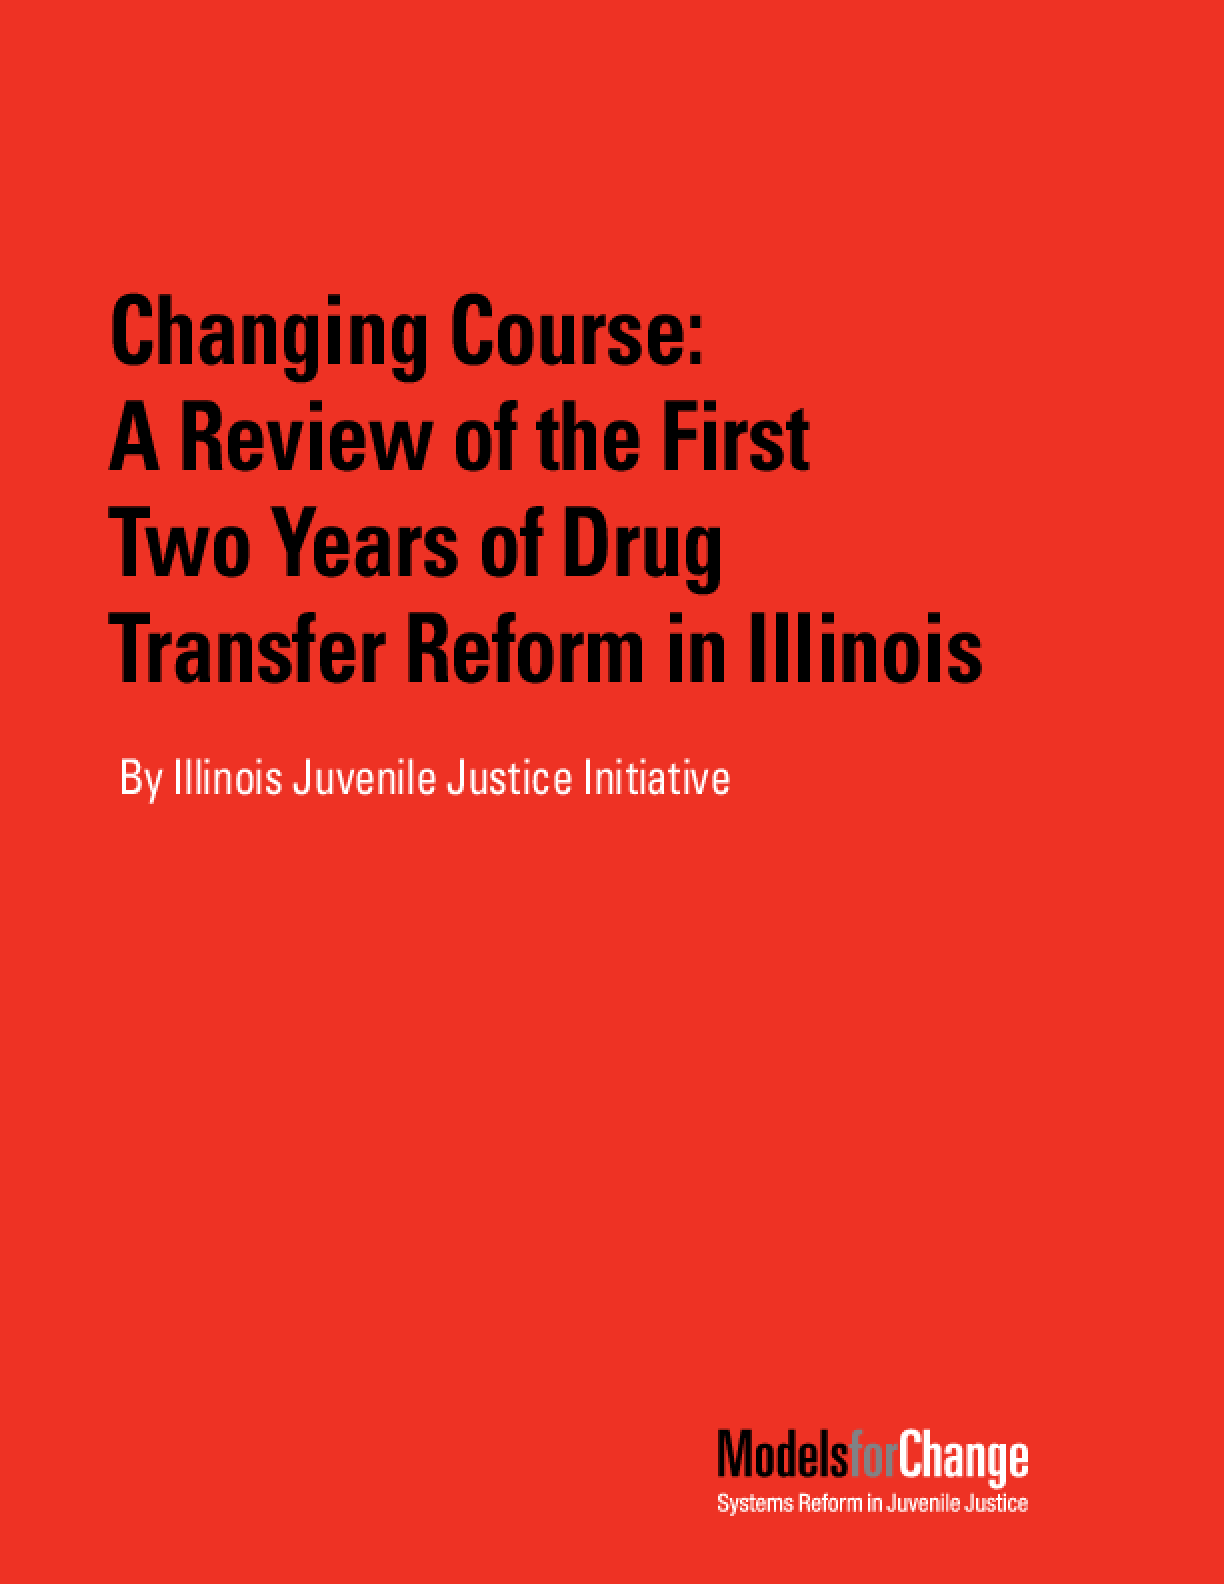 Changing Course: A Review of the First Two Years of Drug Transfer Reform in Illinois